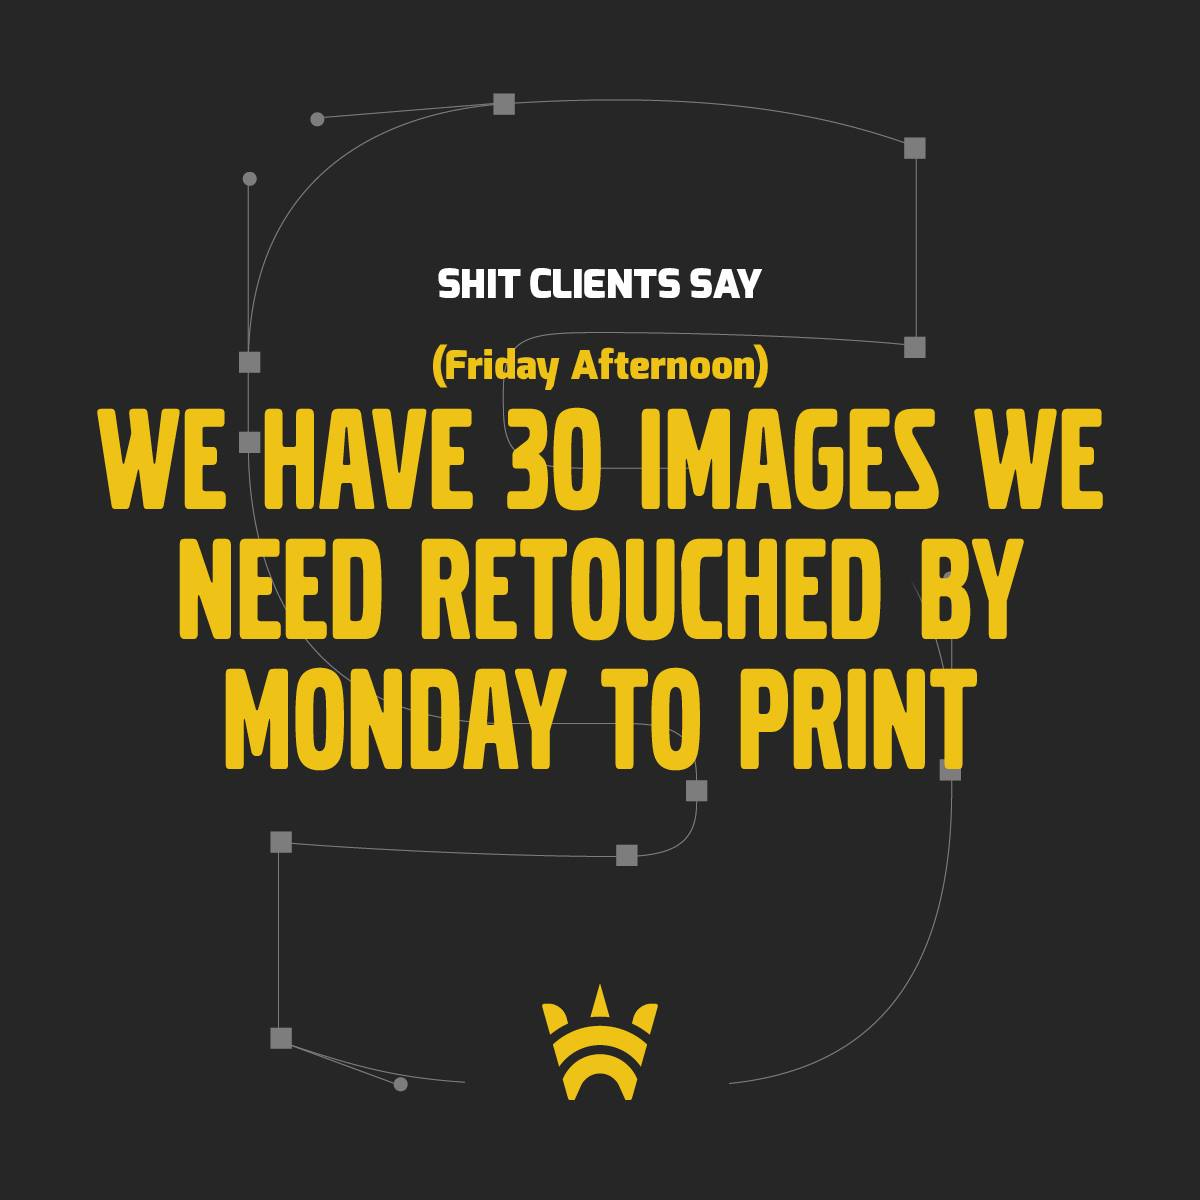 We have 30 images we need retouched by Monday to print